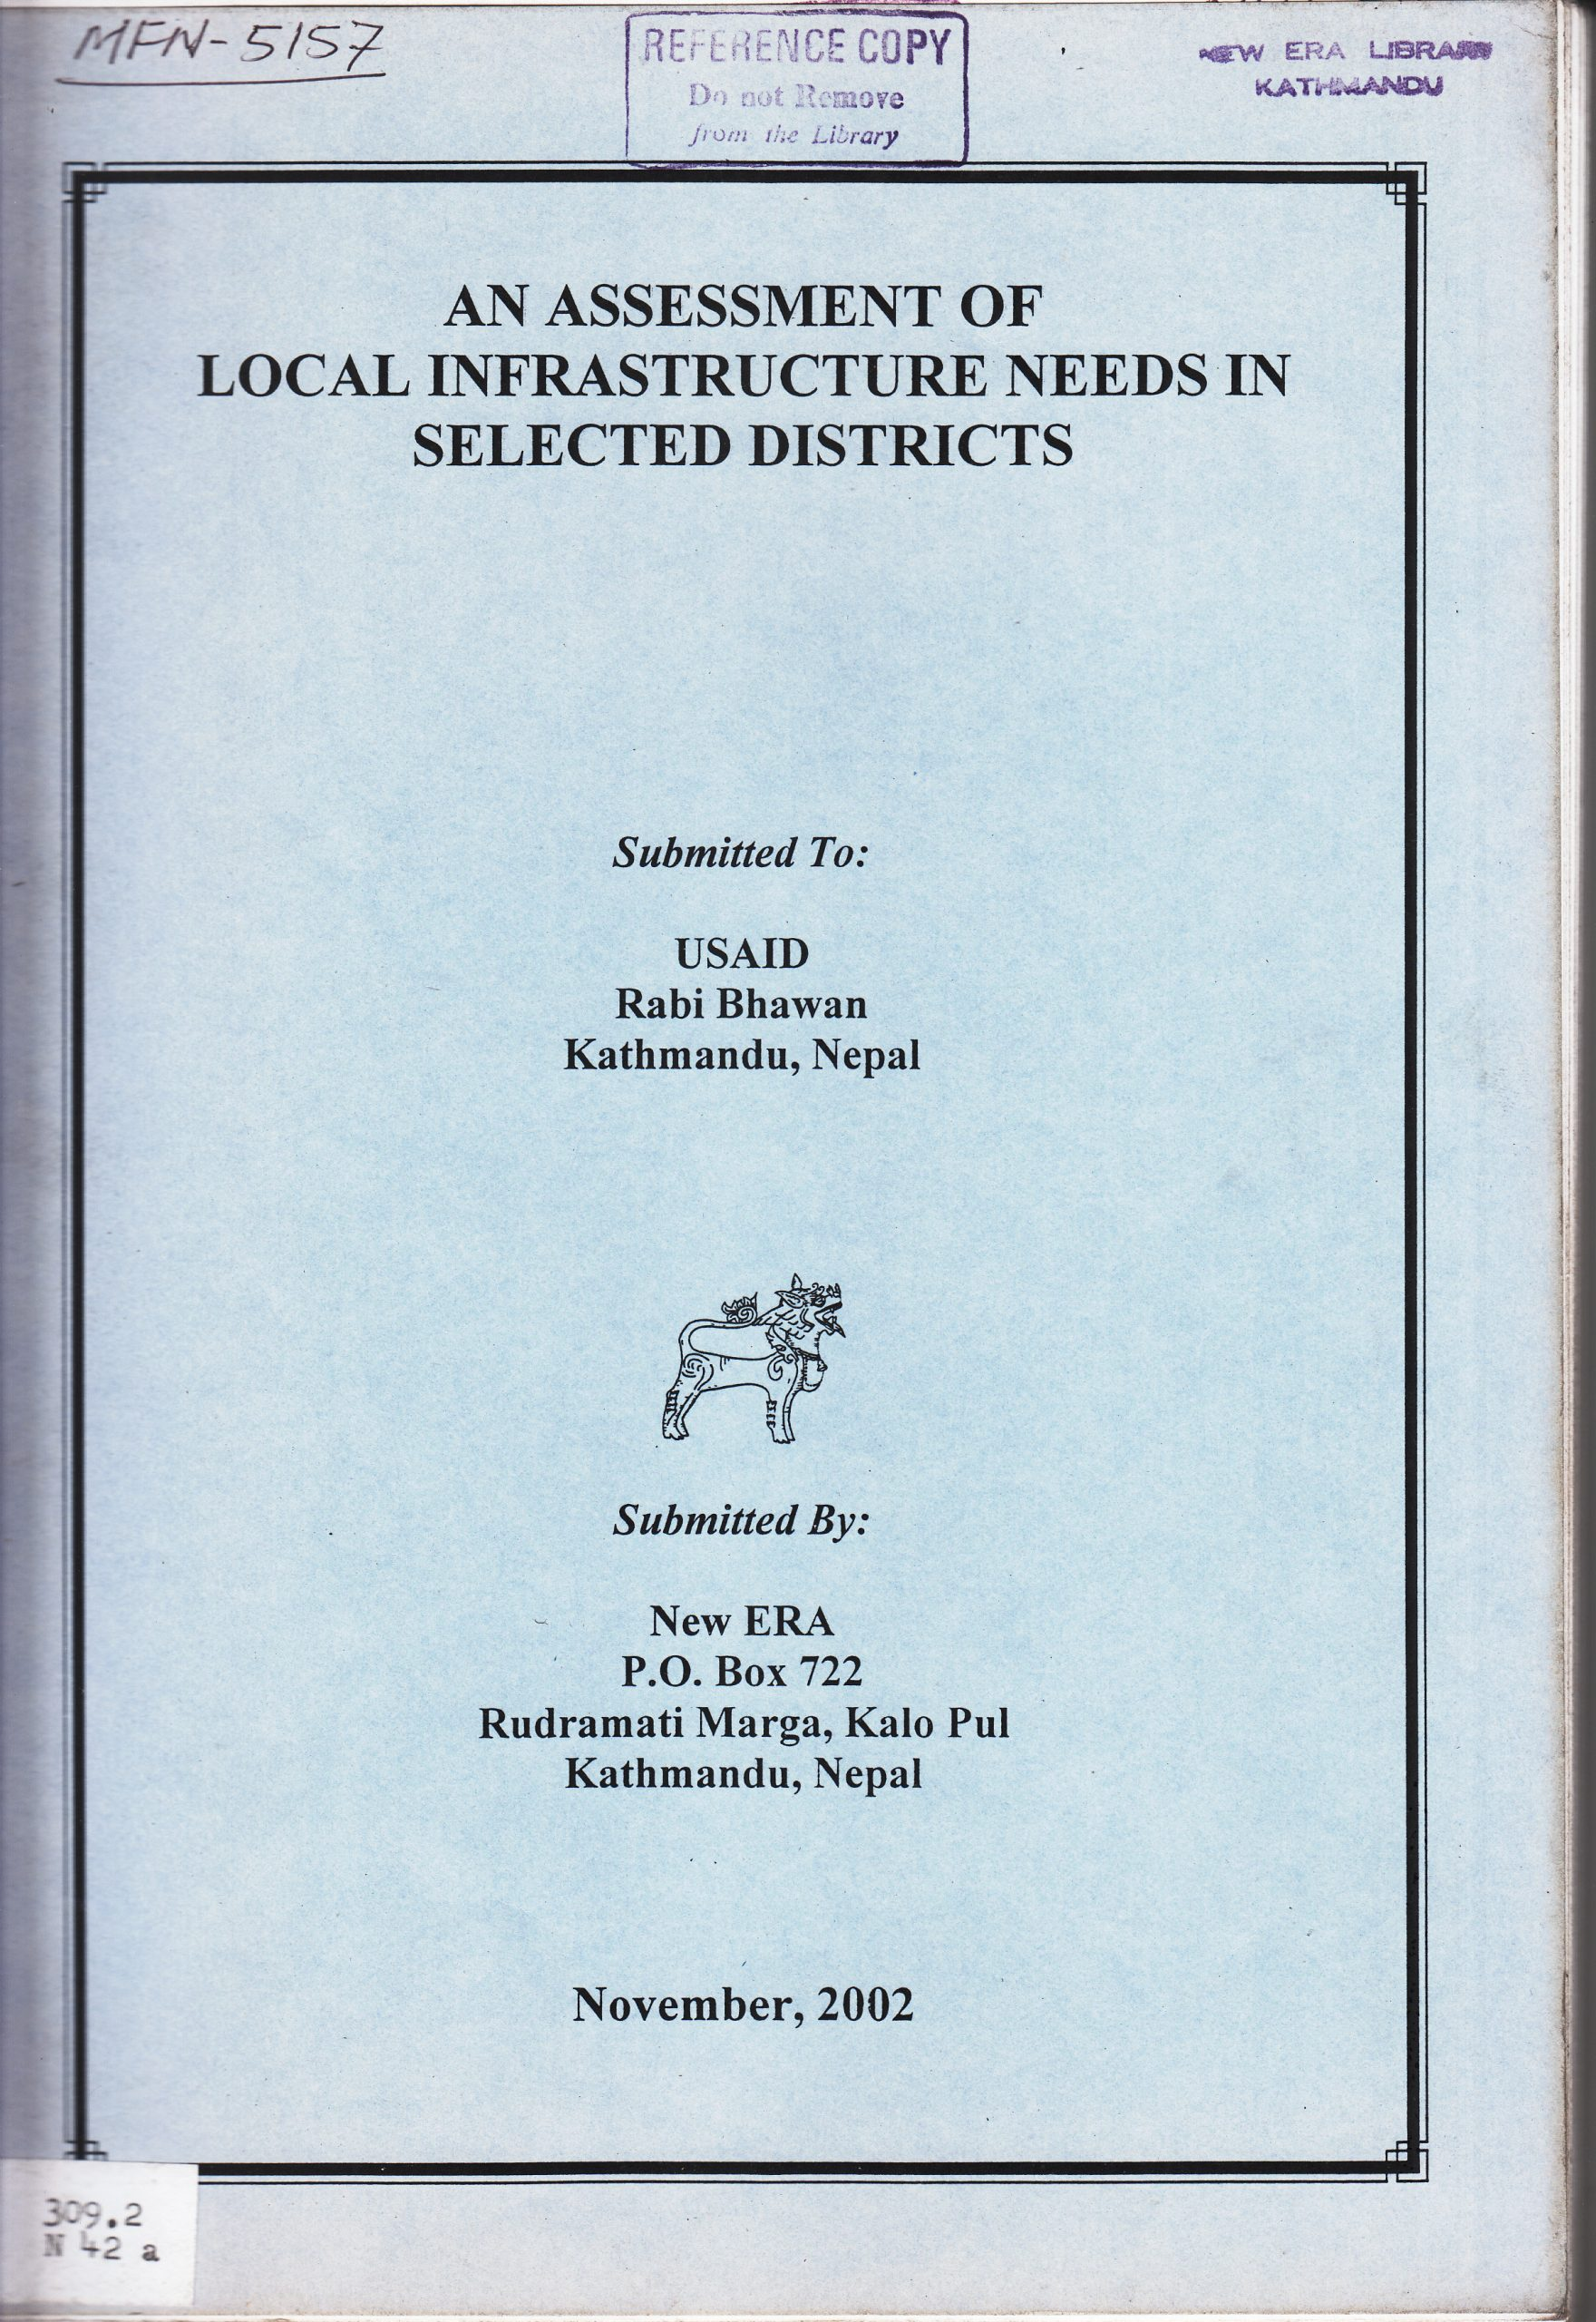 An Assessment of Local Infrastructure Needs in Selected Districts